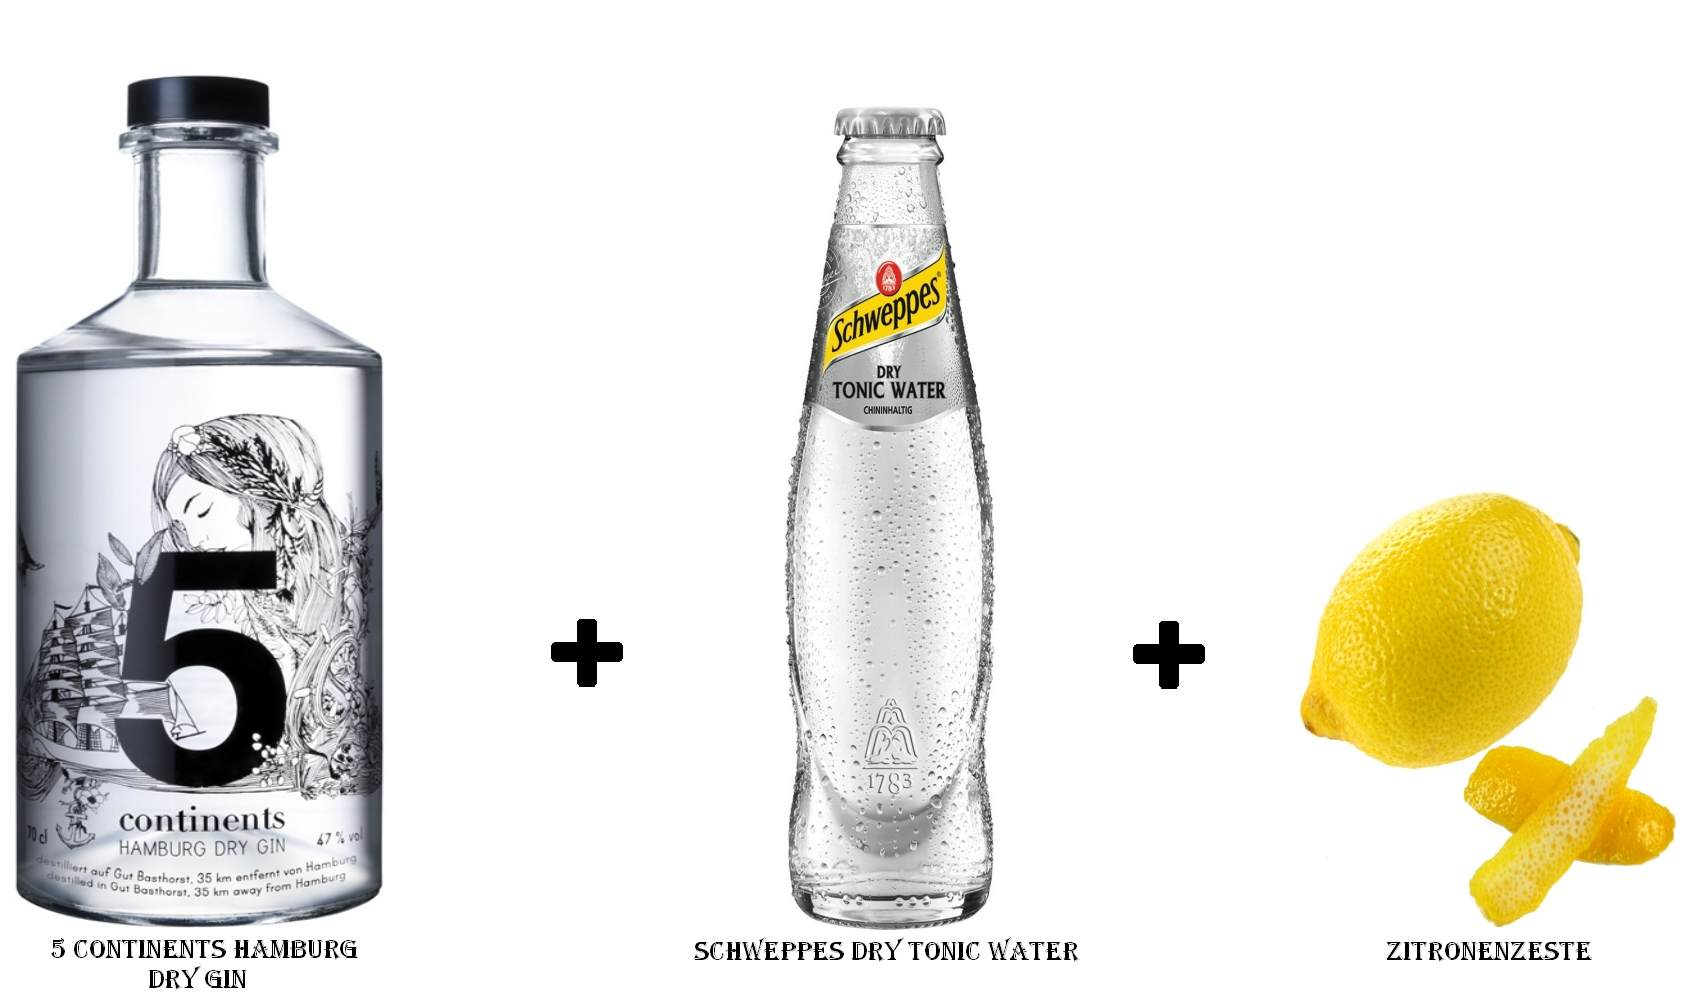 5 Continents Hamburg Dry Gin + Schweppes Dry Tonic Water + Zitronenzeste